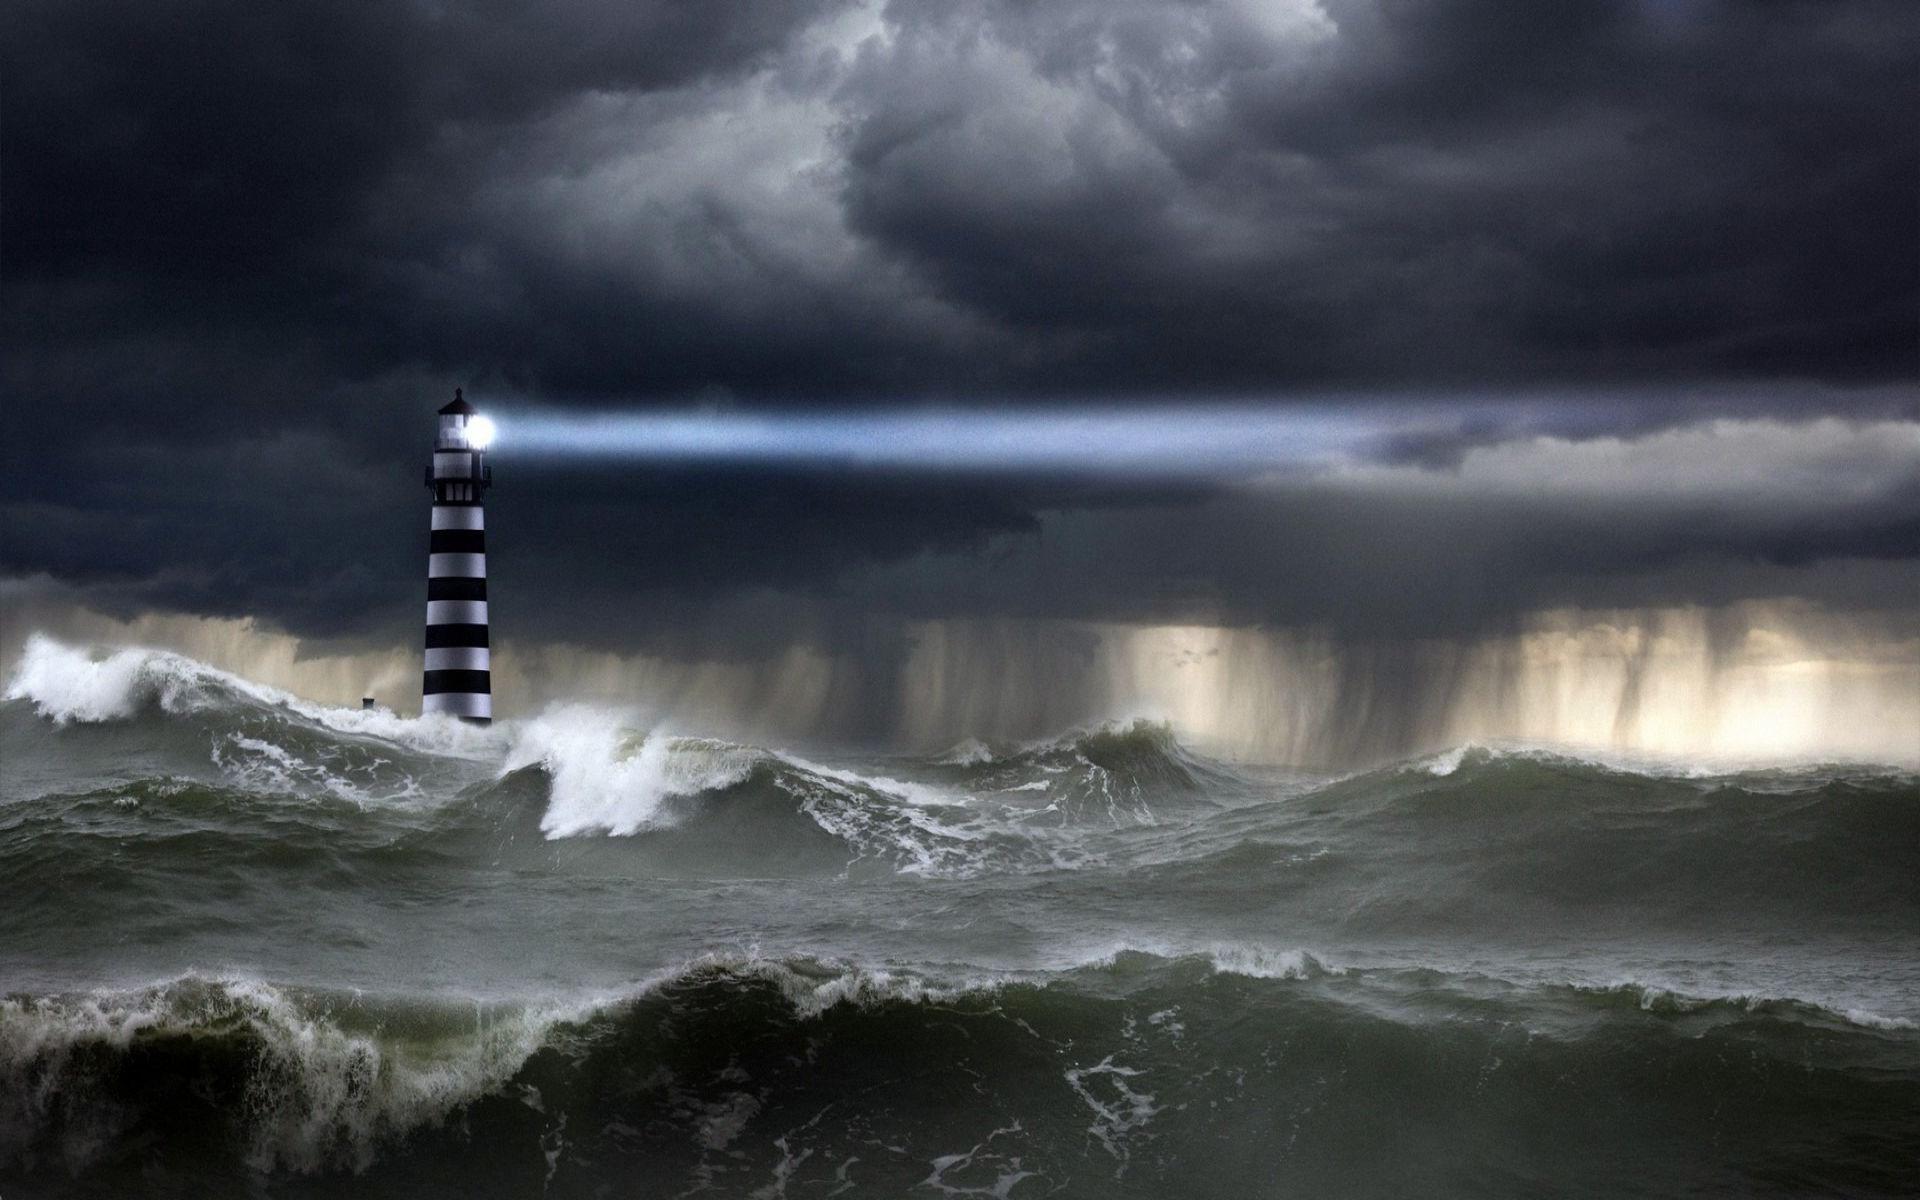 Lighthouse in the storm wallpaper 7532 1920x1200